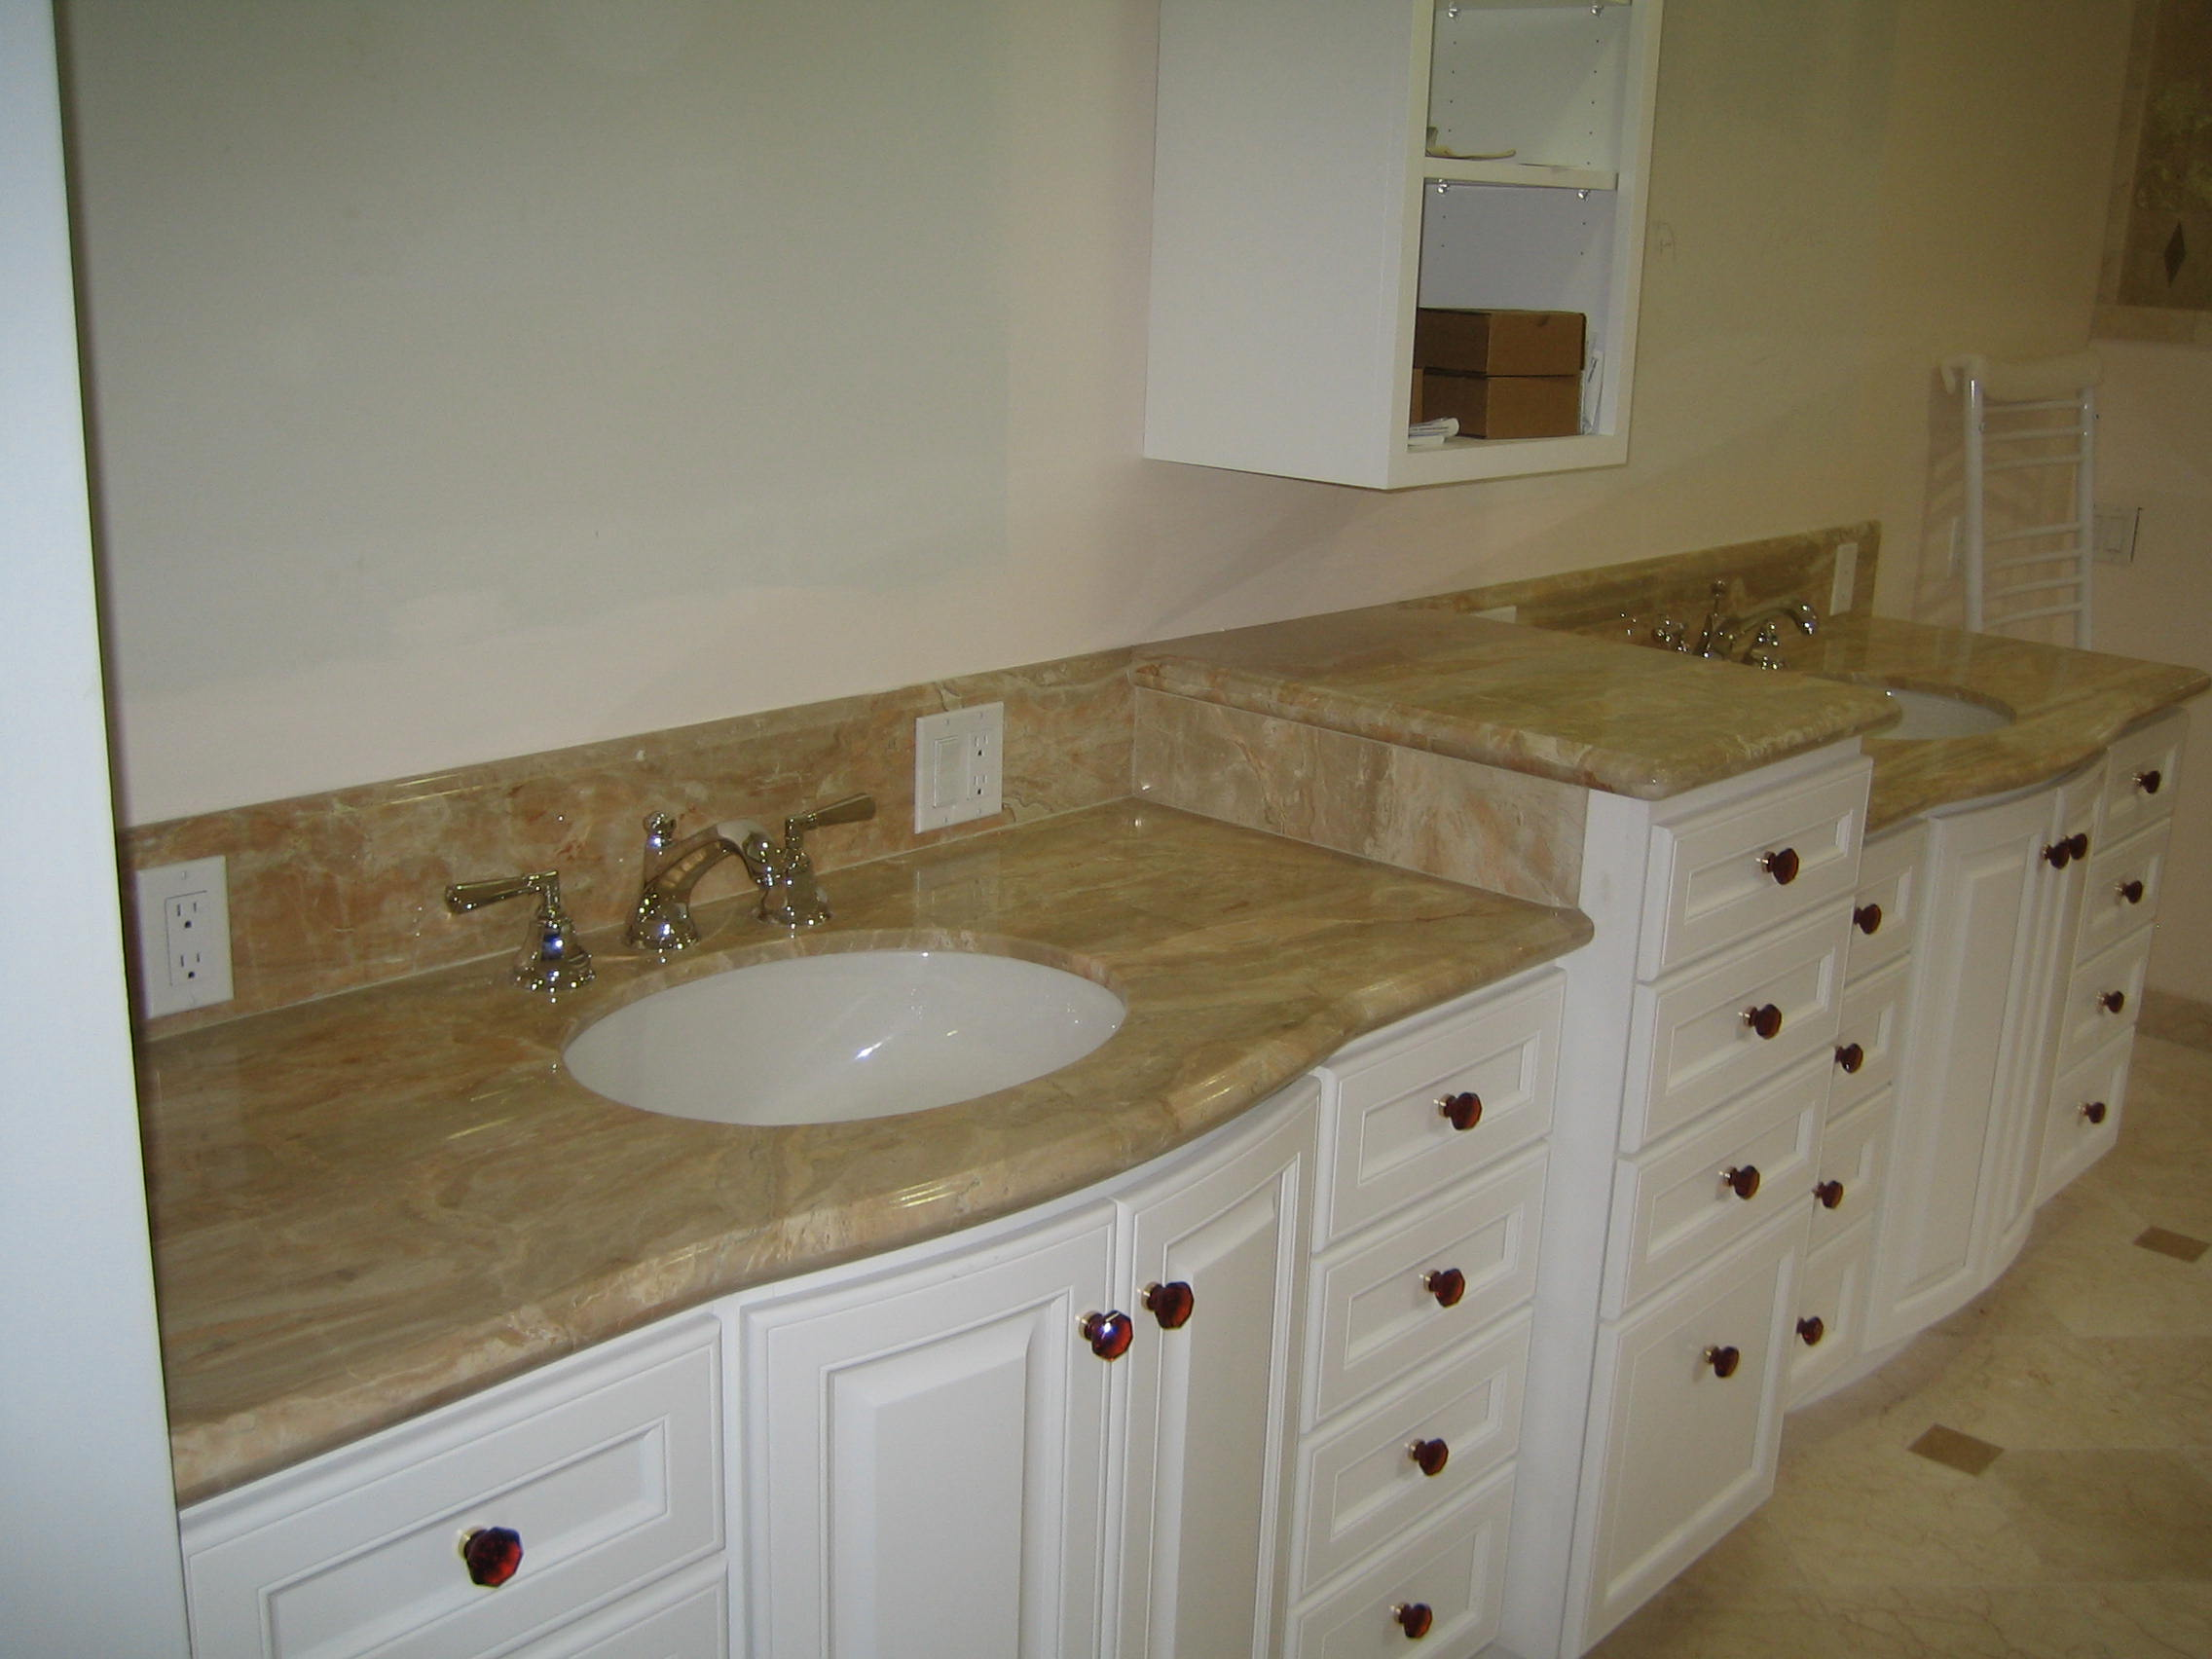 Italian marble bathroom counters counter culture - Bathroom design ideas italian ...